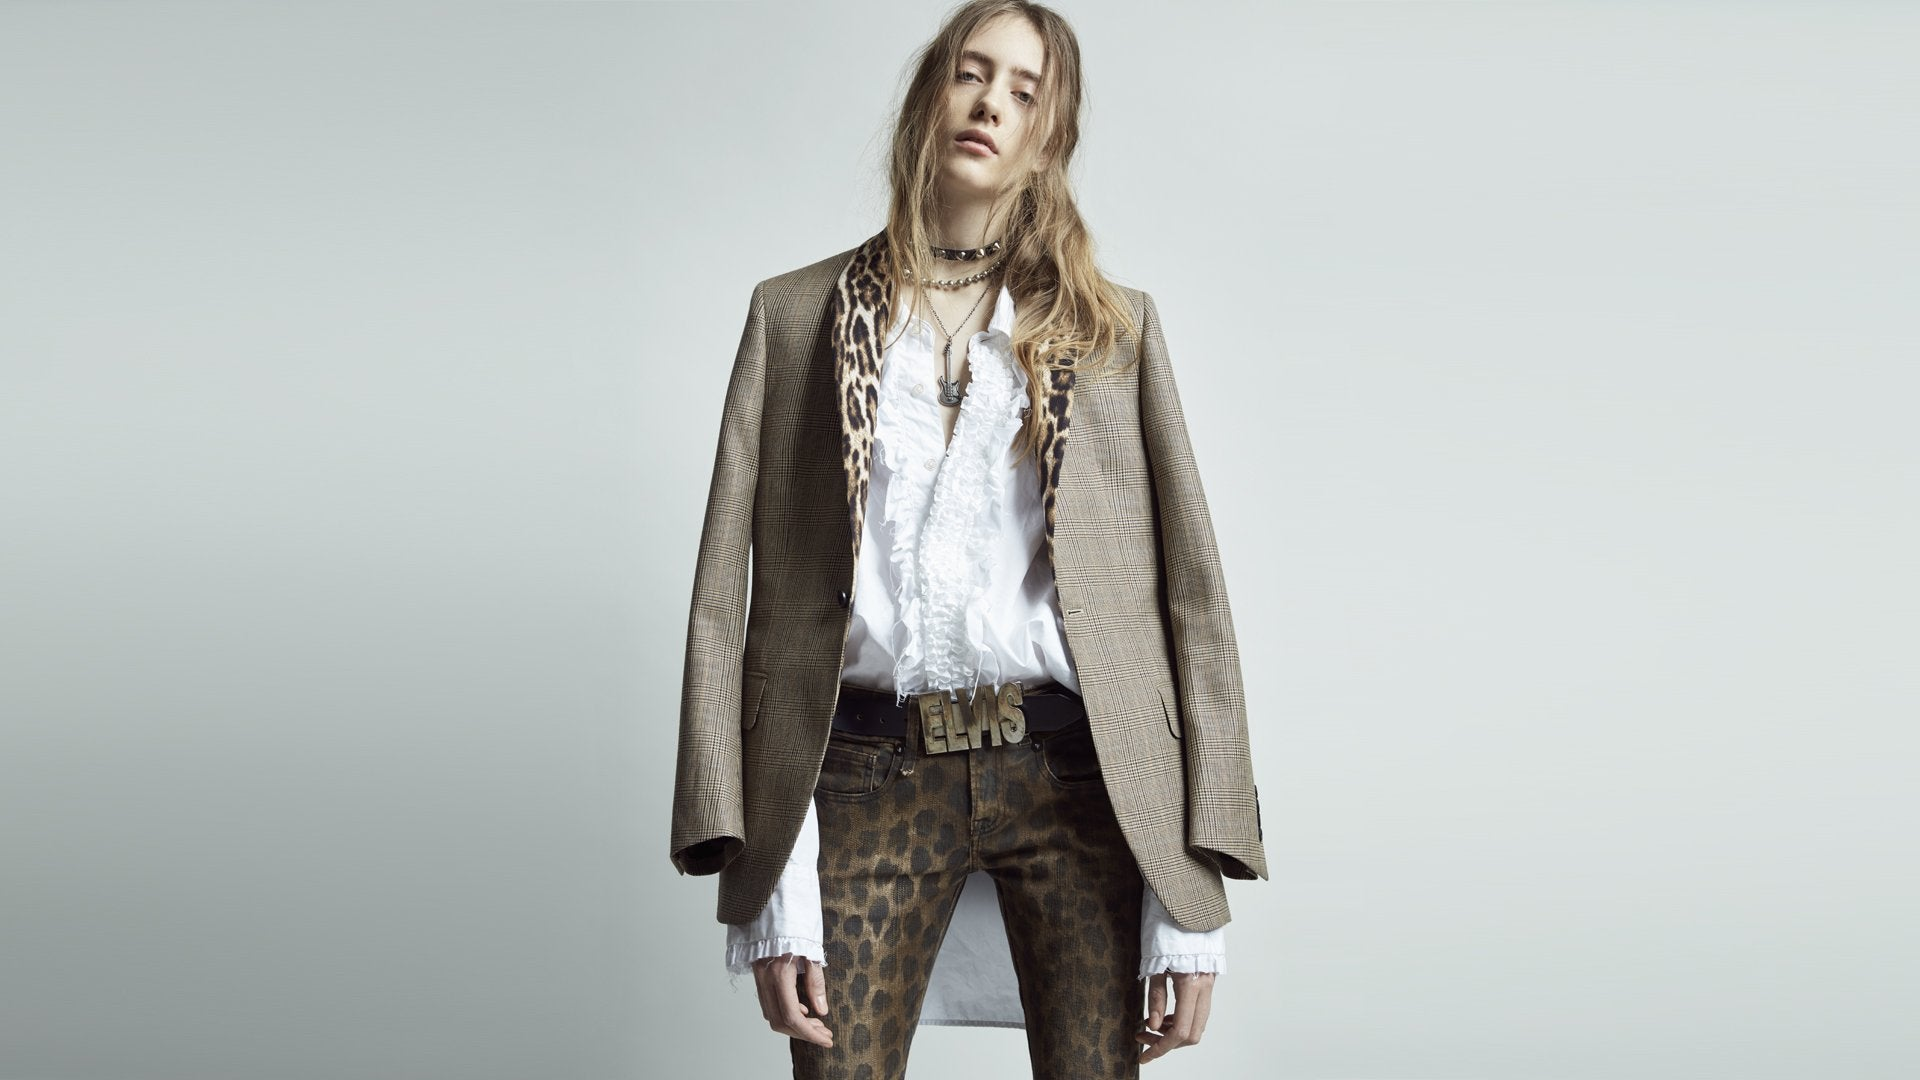 Womens PF19 Lookbook Image 9